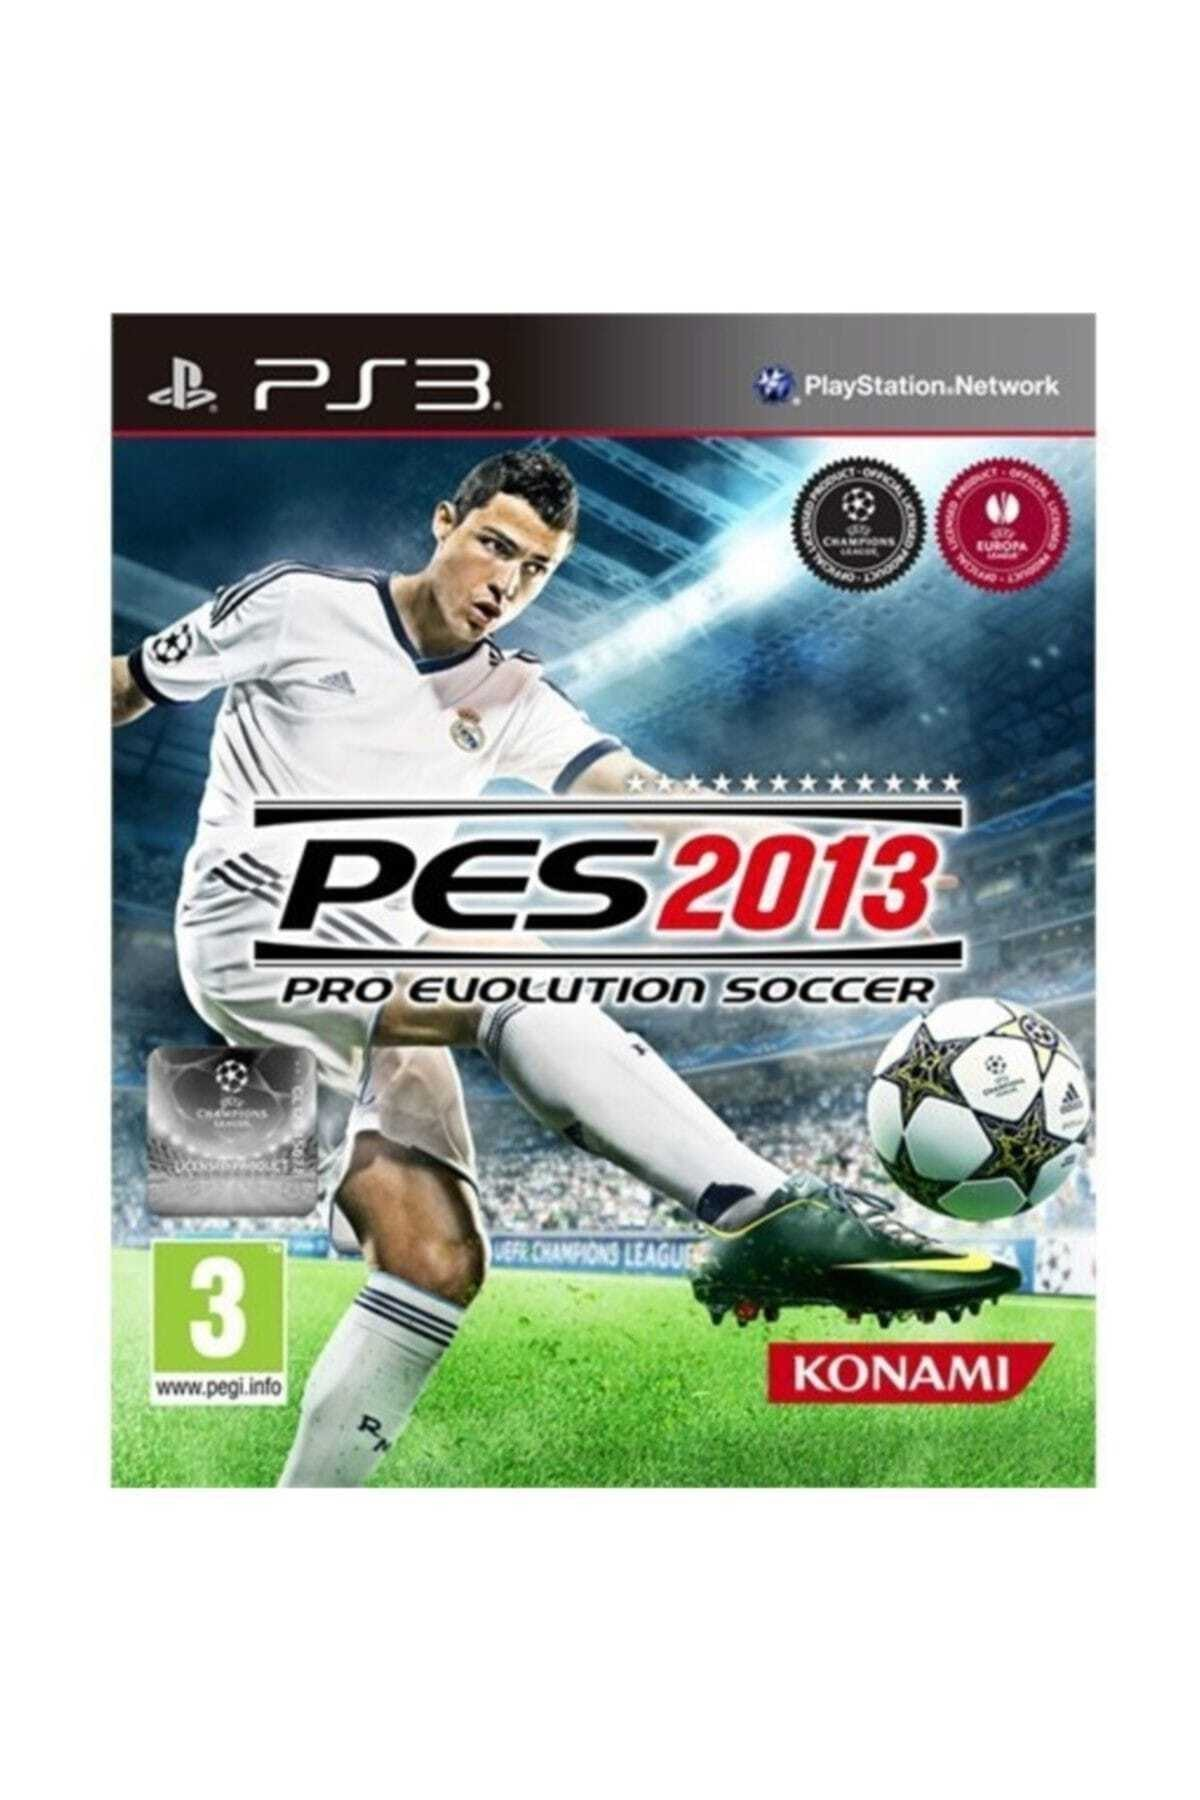 KONAMI Pro Evolution Soccer 2013 - Pes 2013 Ps3 1